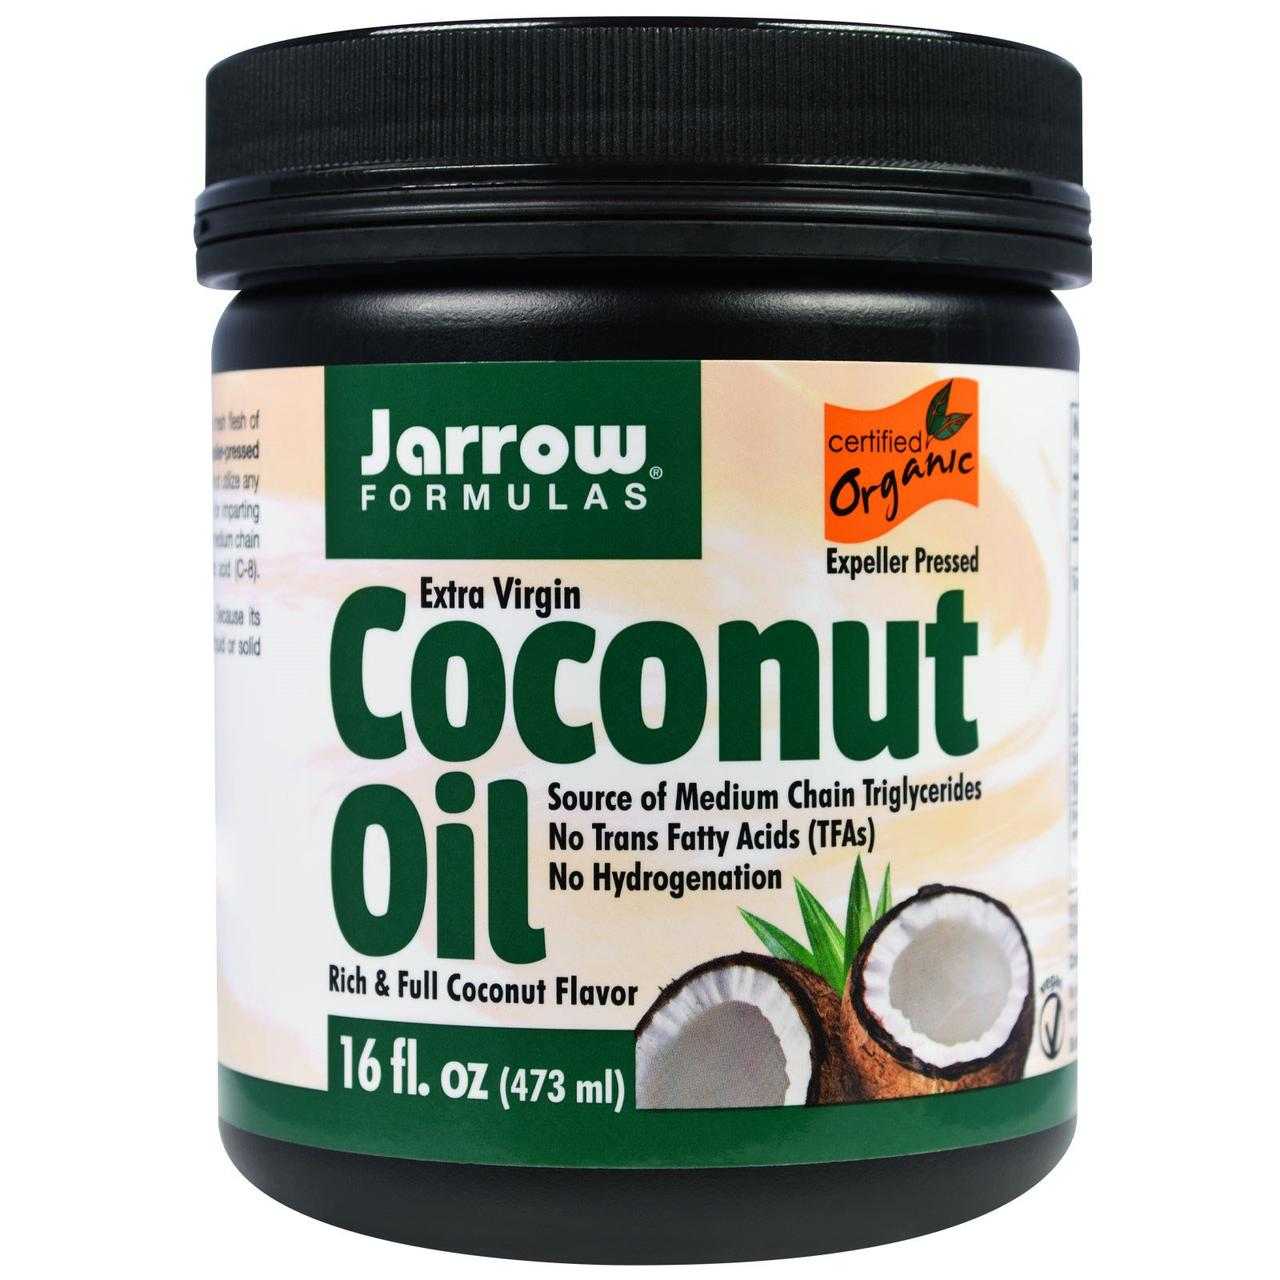 Extra Virgin Coconut Oil Jarrow Formulas 473 g